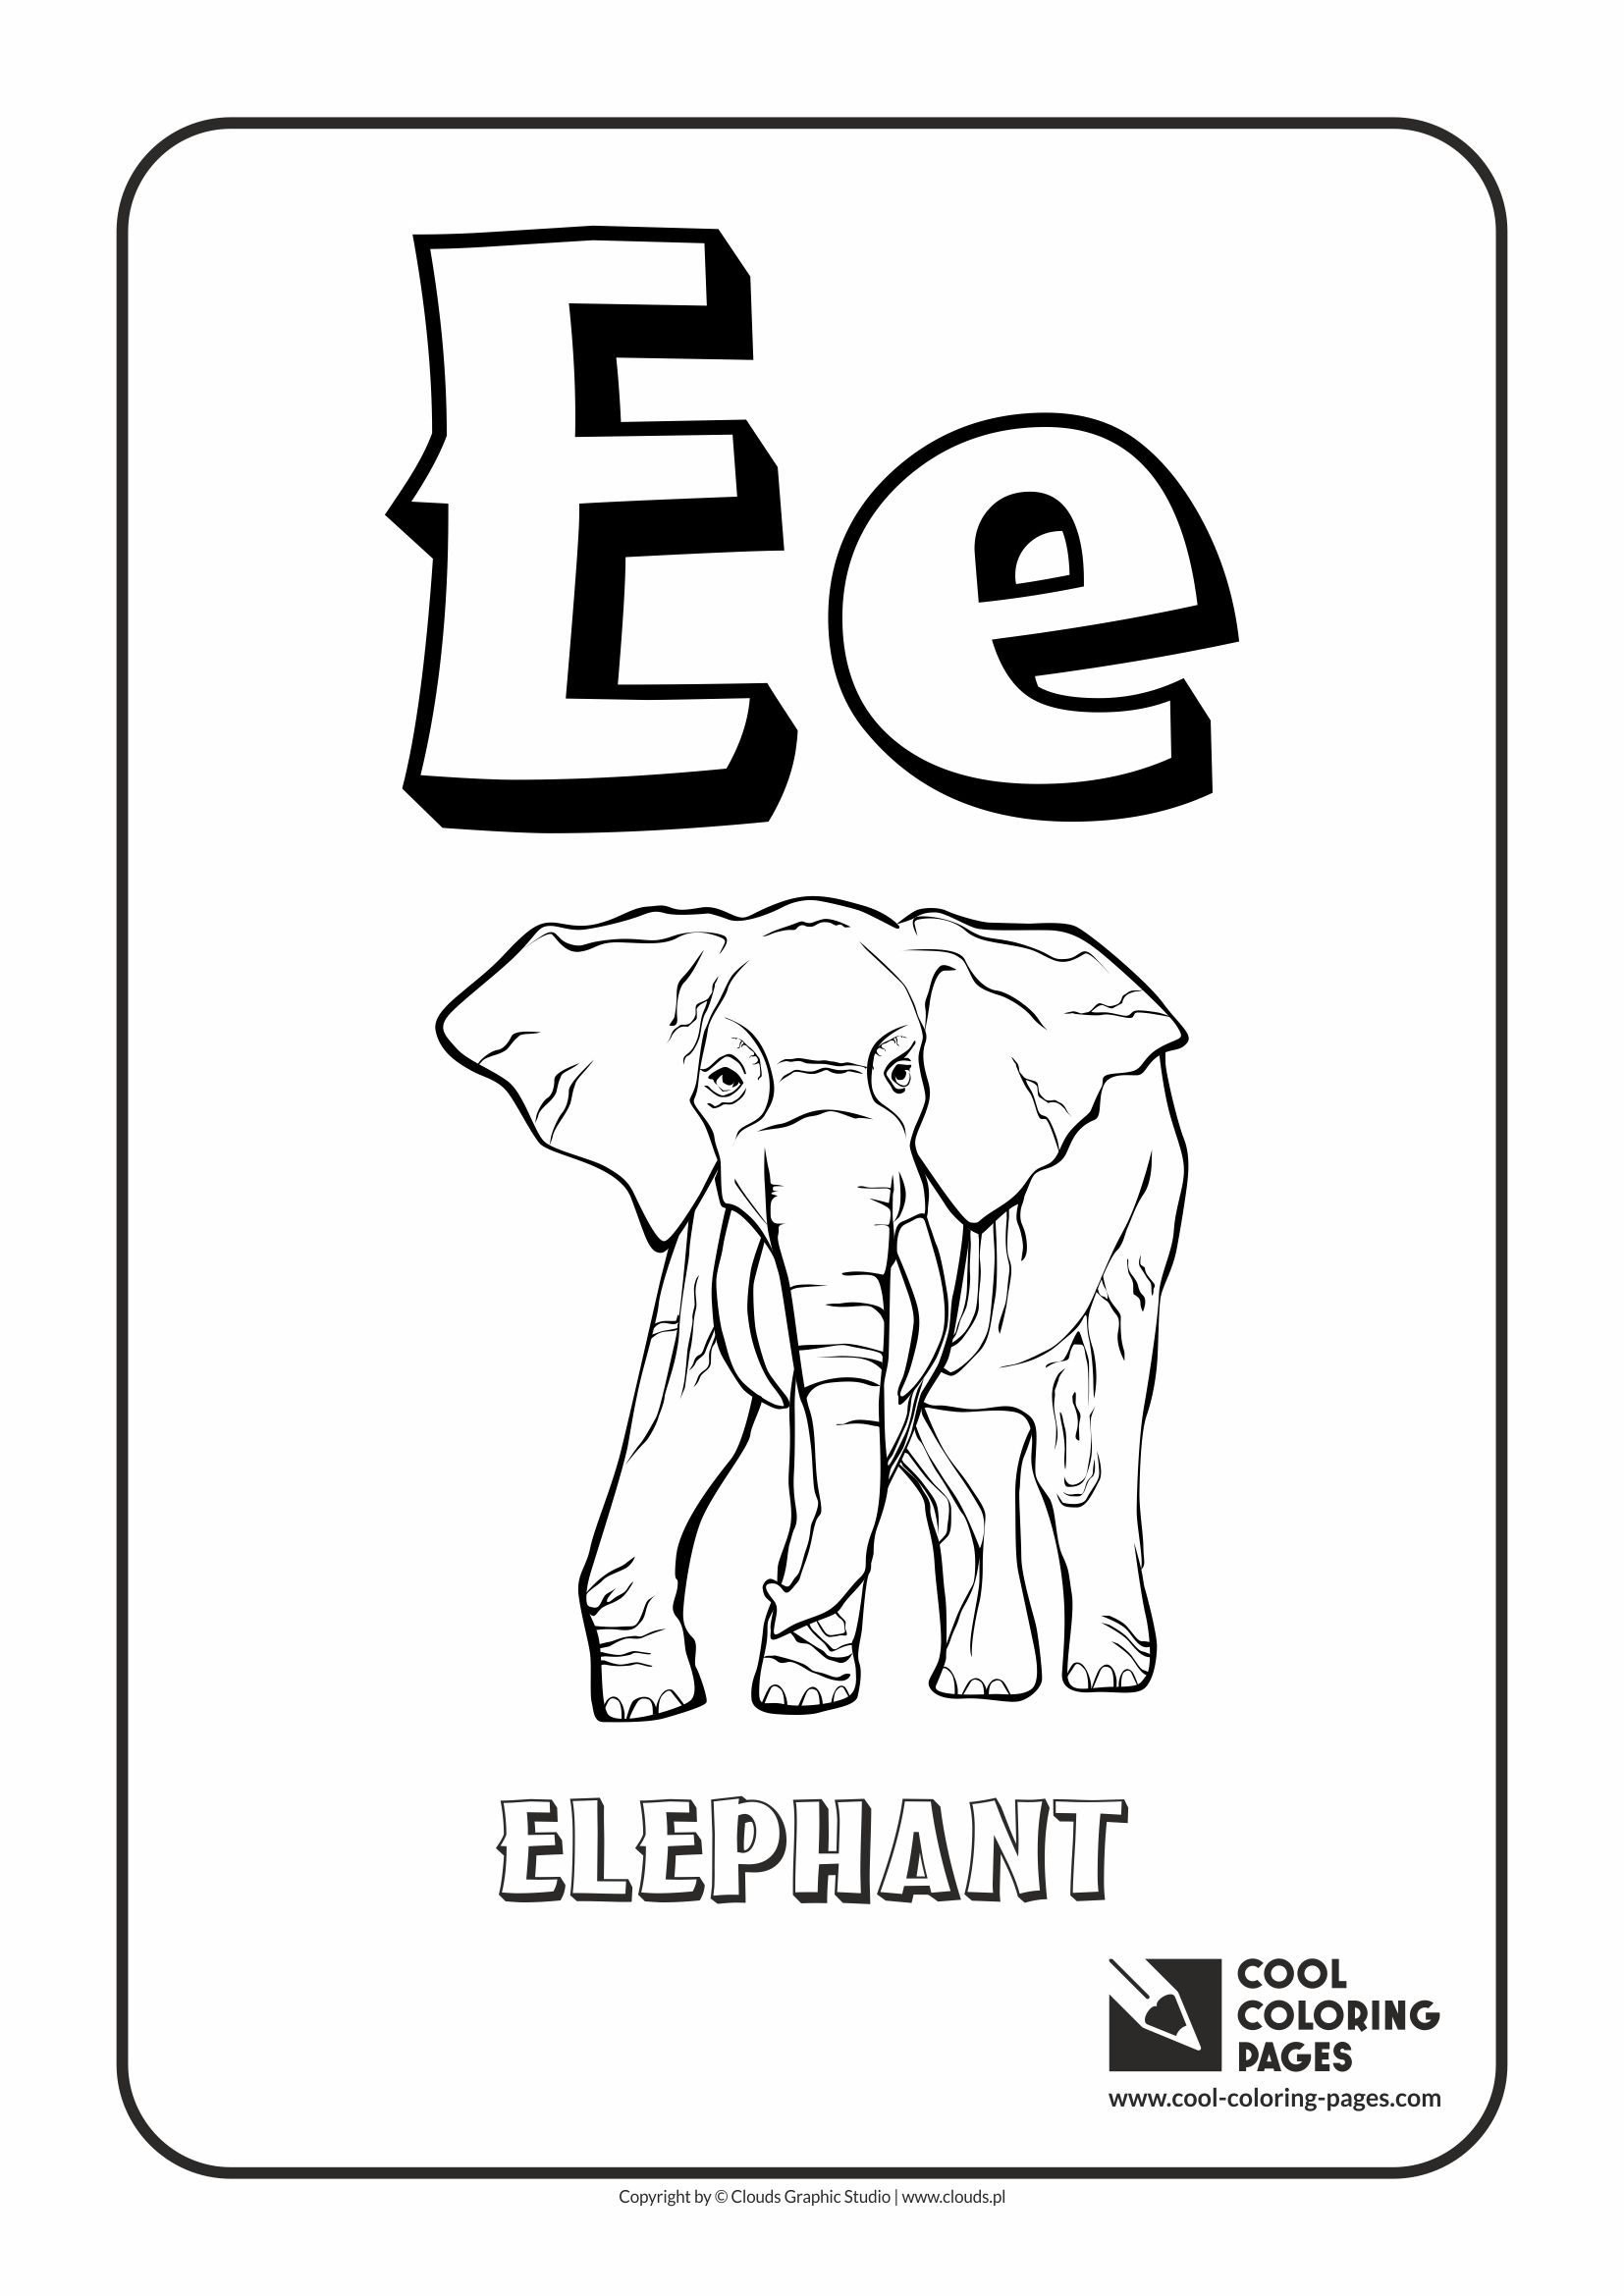 Letter E Coloring Alphabet Cool Coloring Pages